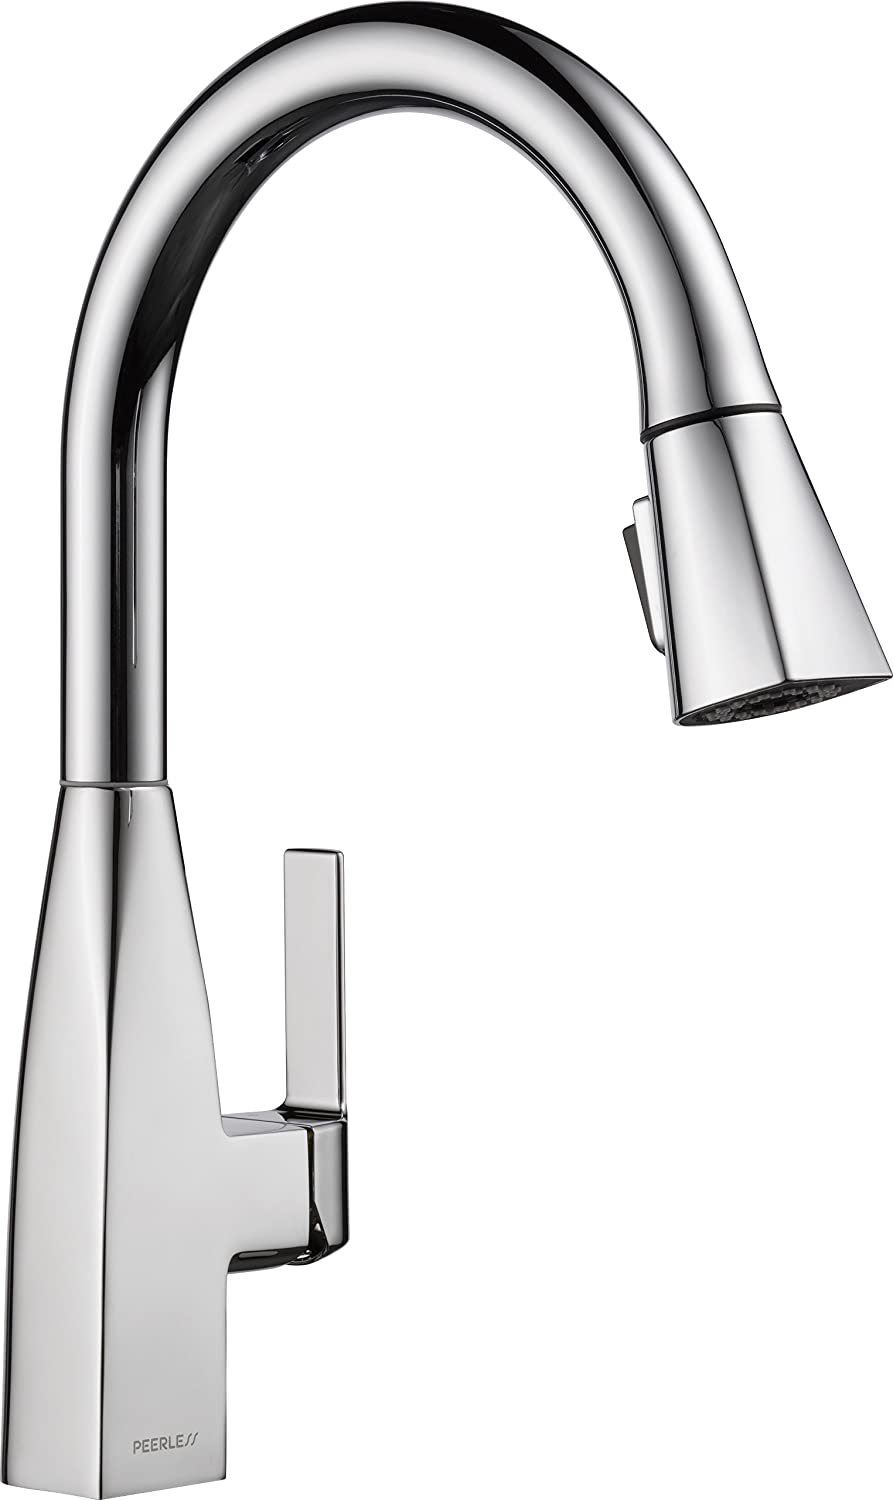 Peerless Xander Indianapolis Mall Single-Handle Kitchen Sink A surprise price is realized with Pull Faucet Down